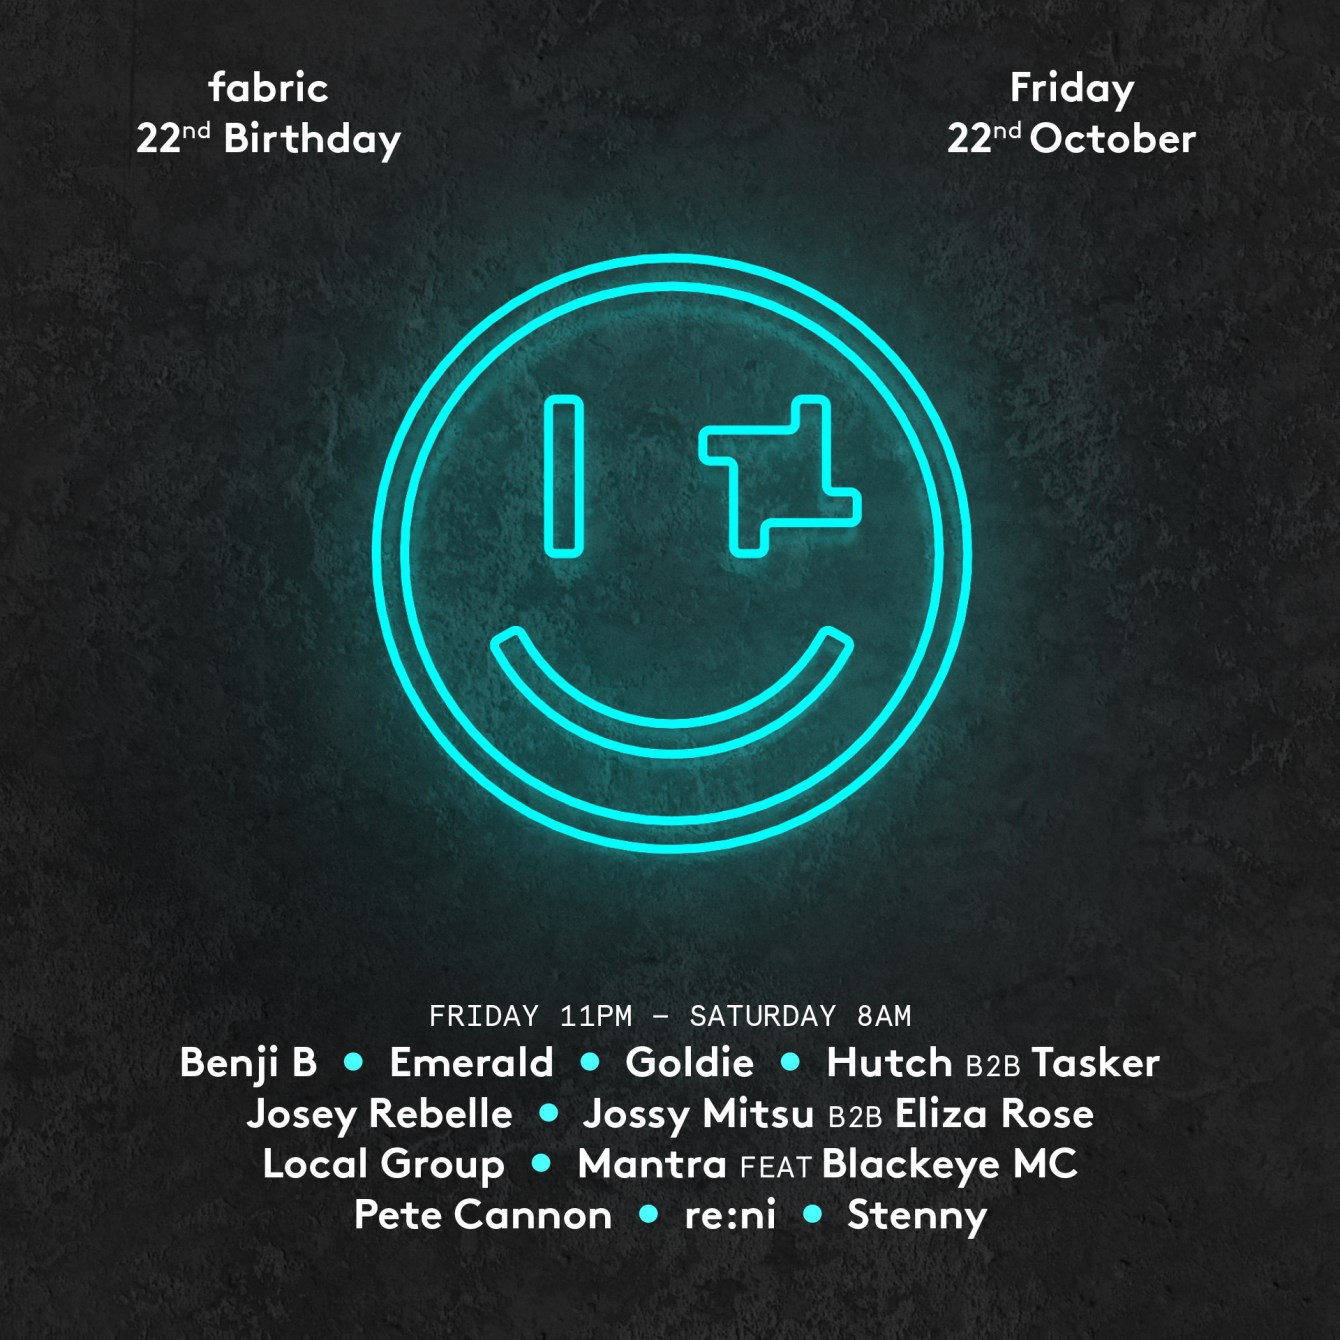 fabric 22nd Birthday: Friday - Goldie, Josey Rebelle, Benji B, Stenny, re:ni & More - Flyer front